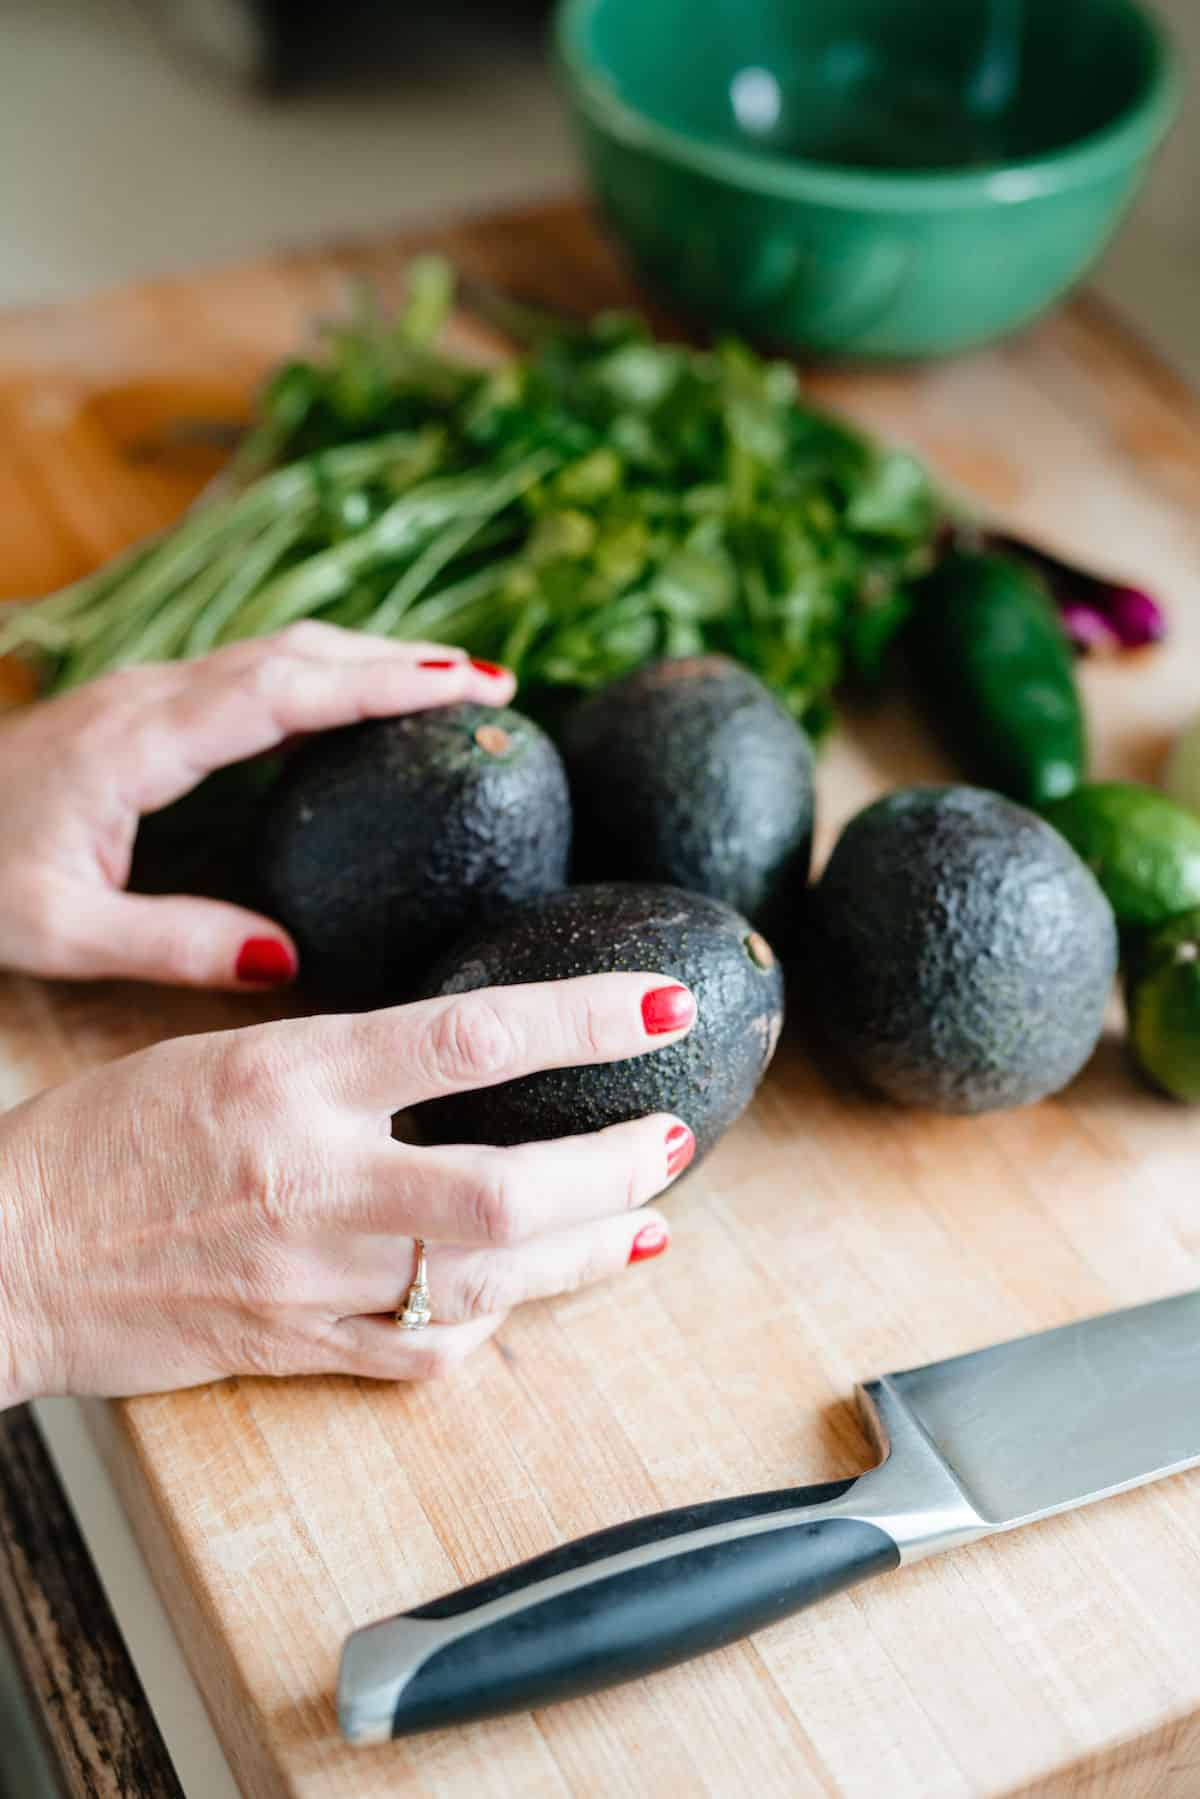 A woman's hands setting avocados on a wooden cutting board.